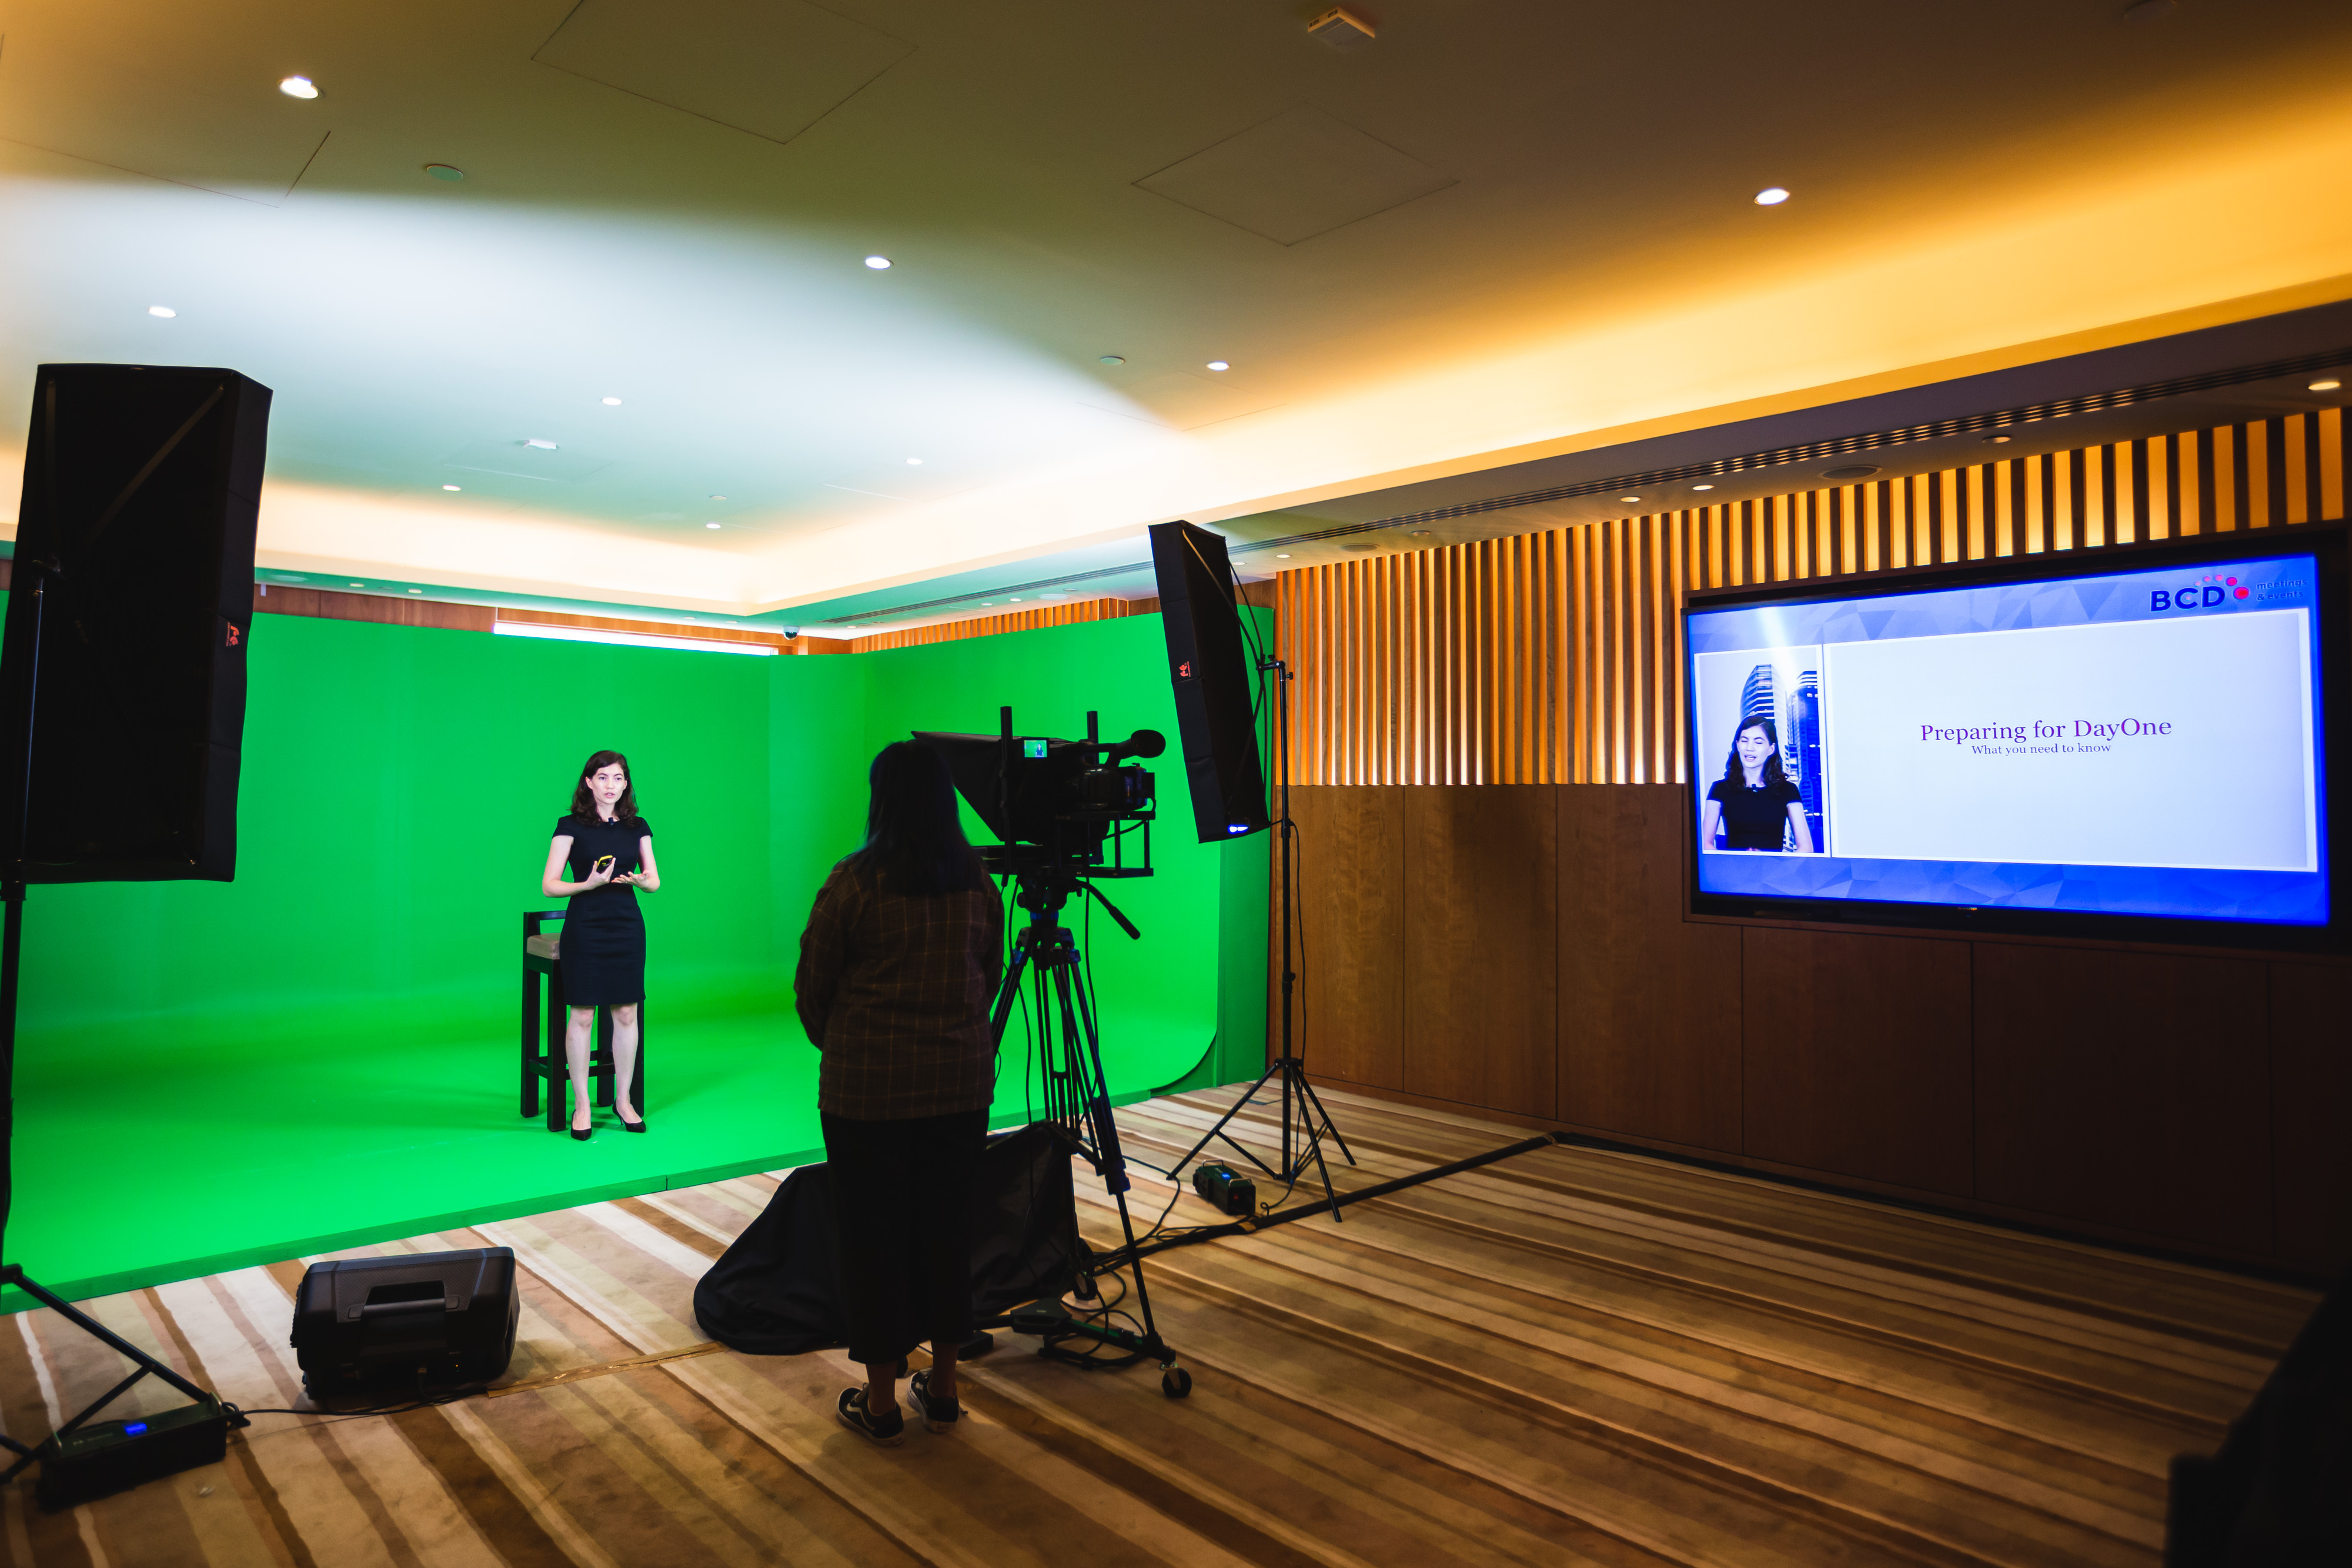 Virtual speaker standing in front of green screen and camera for Hybrid Event Showcase | Global agency, BCD Meetings & Events